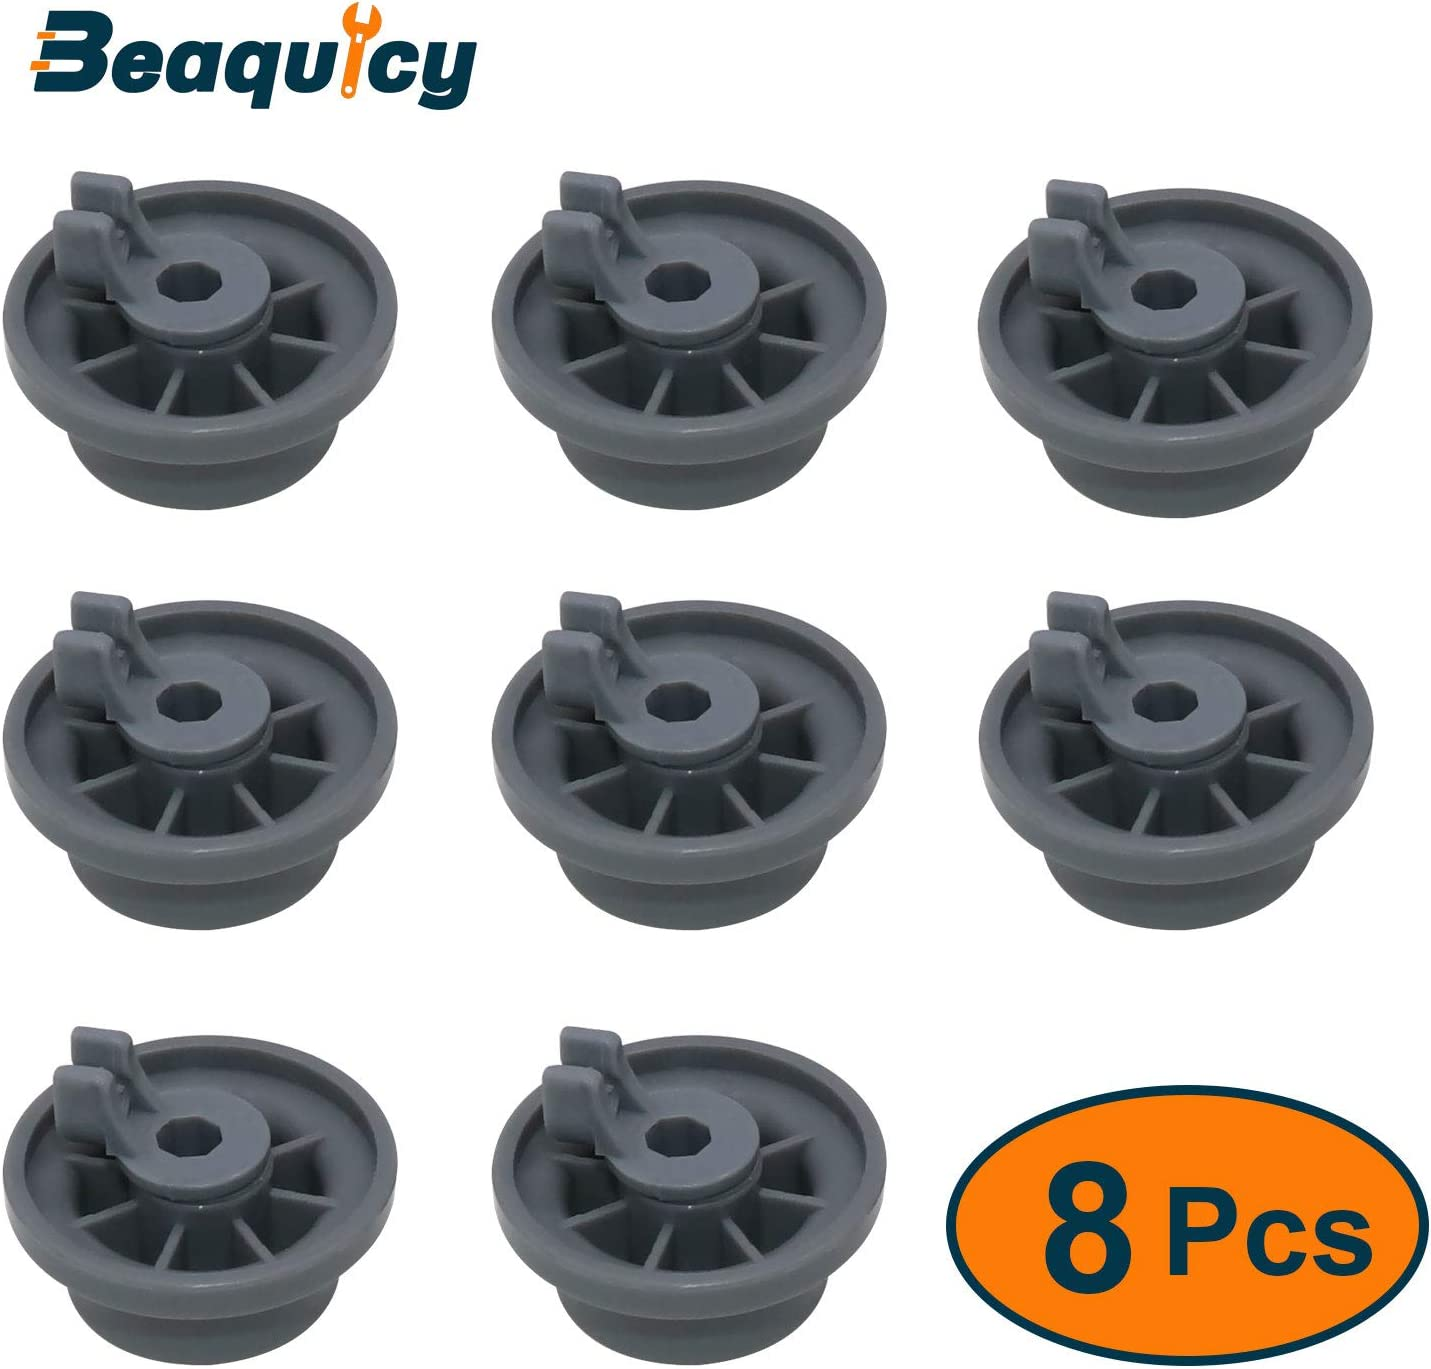 Beaquicy 165314 Dishwasher Lower Rack Wheel (8 PACK) - Replacement for Bosch Kenmore Dishwashers